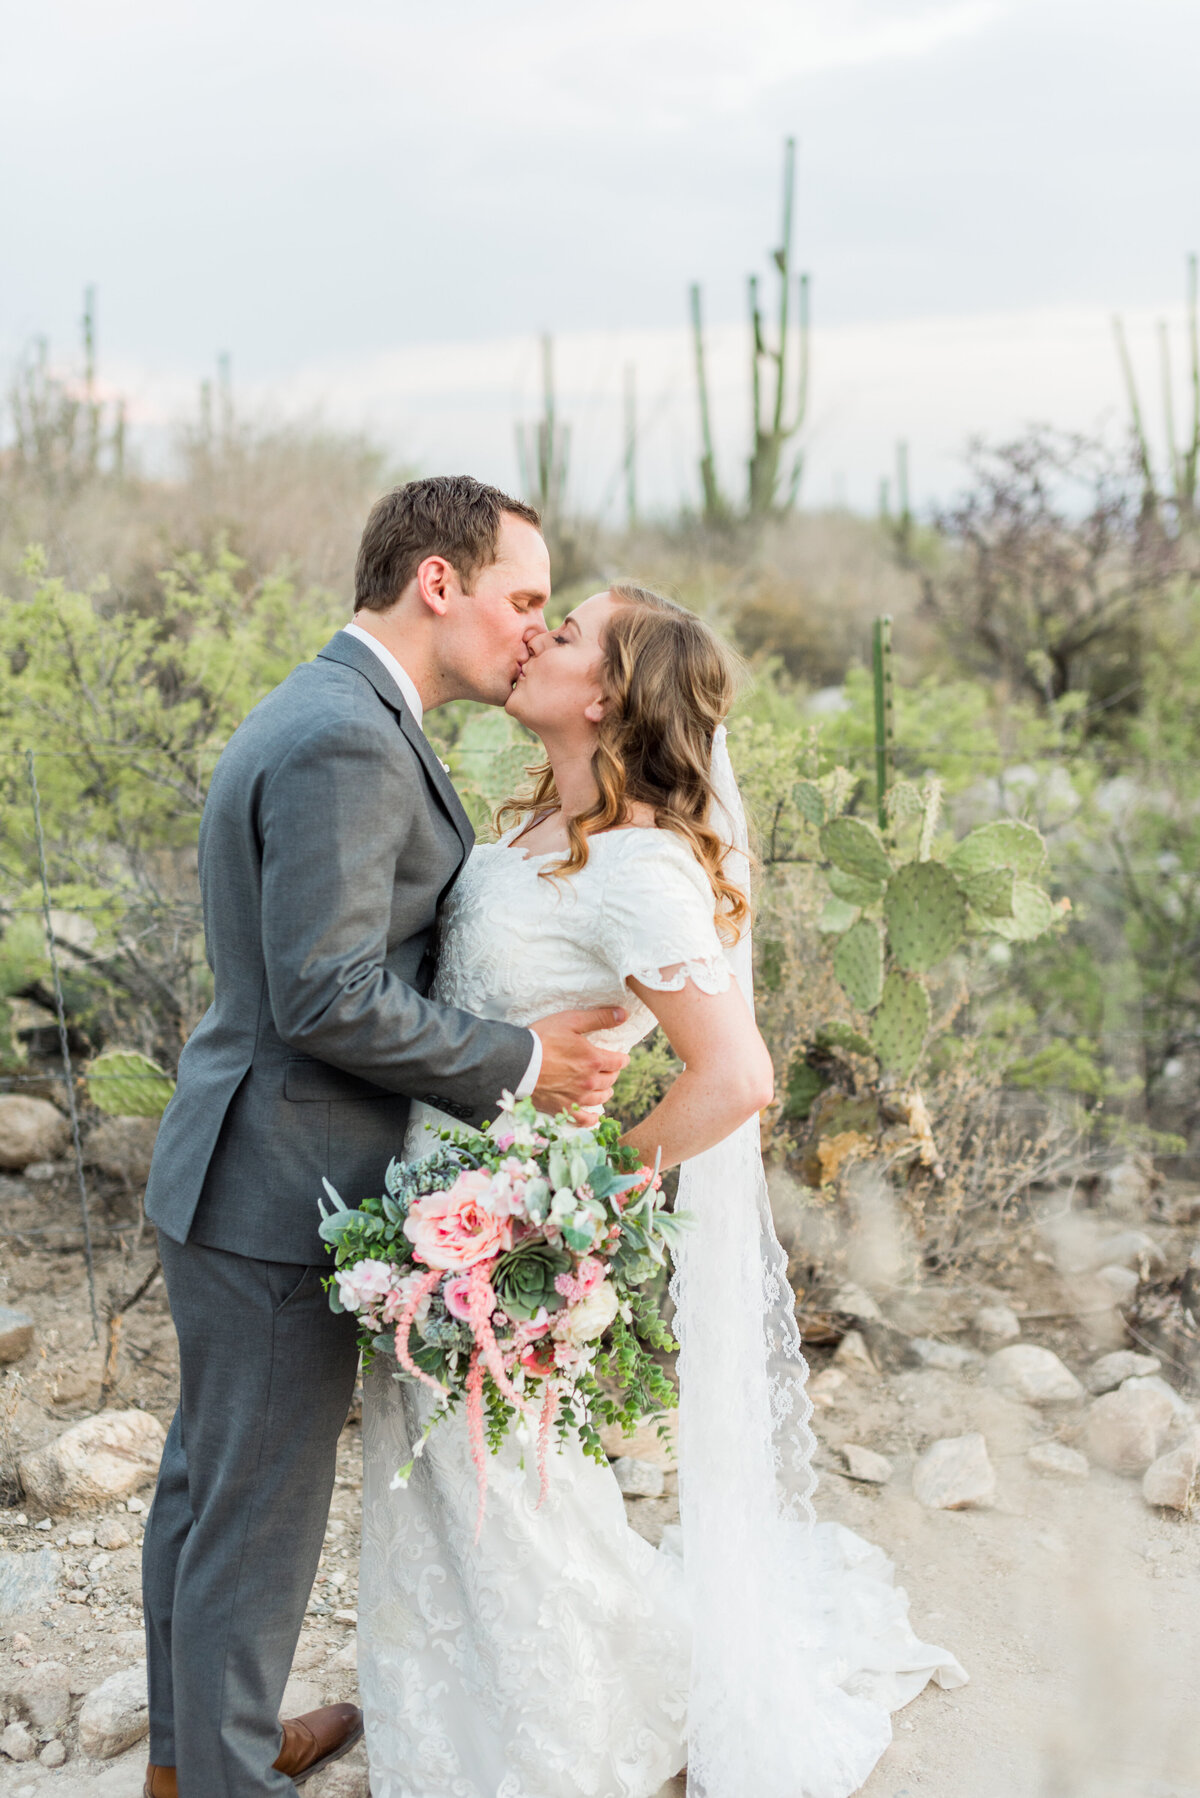 Marquette-LaRee-Payson-AZ-Wedding-Photographer-69